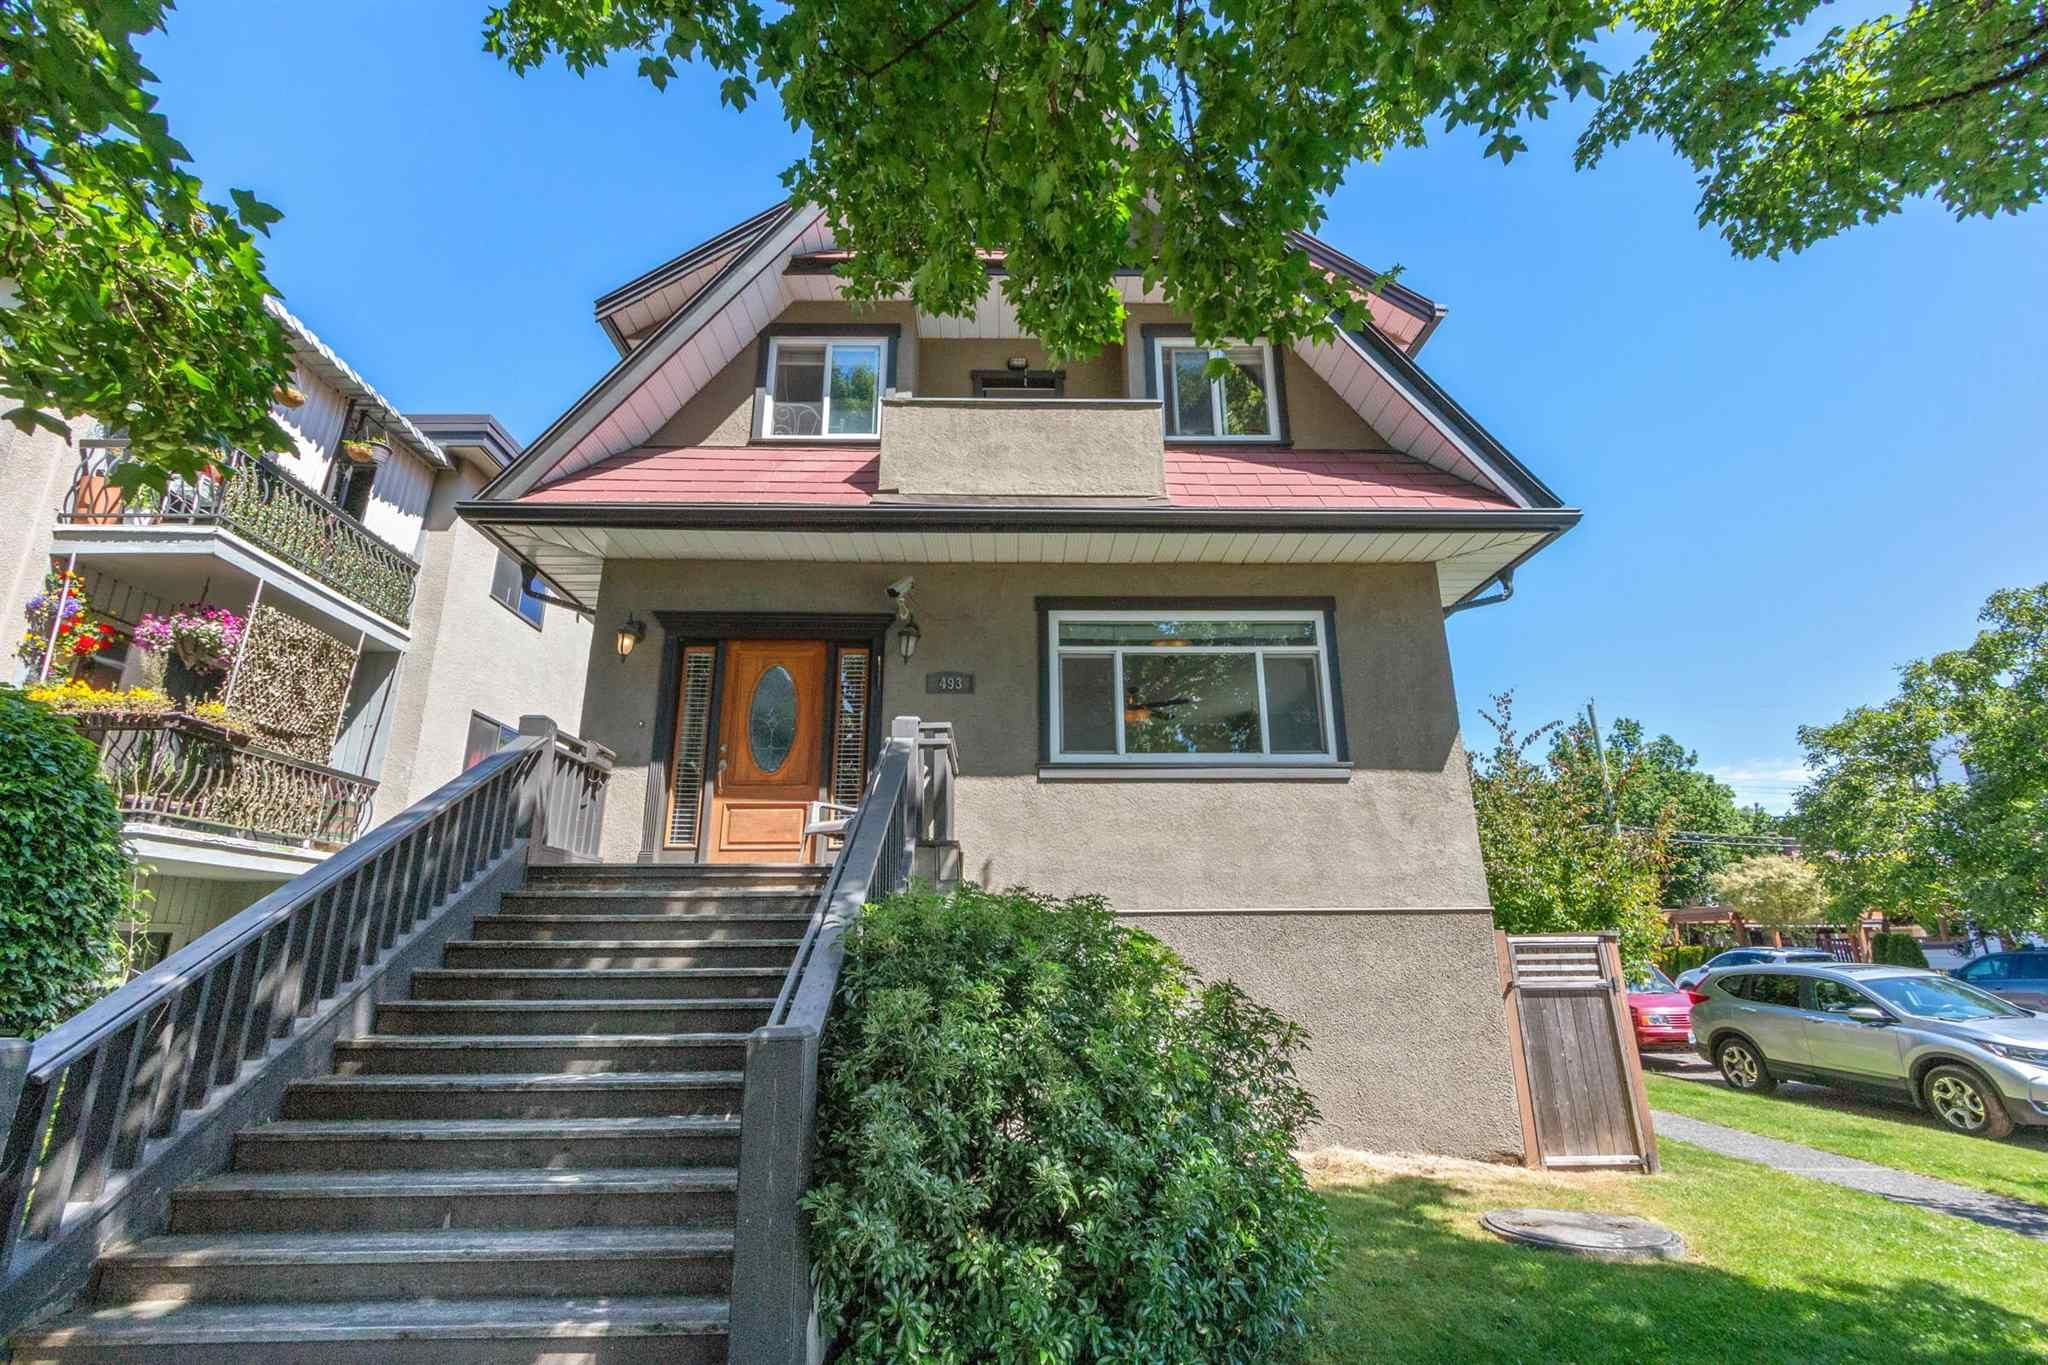 Main Photo: 493 E 44TH Avenue in Vancouver: Fraser VE House for sale (Vancouver East)  : MLS®# R2617982